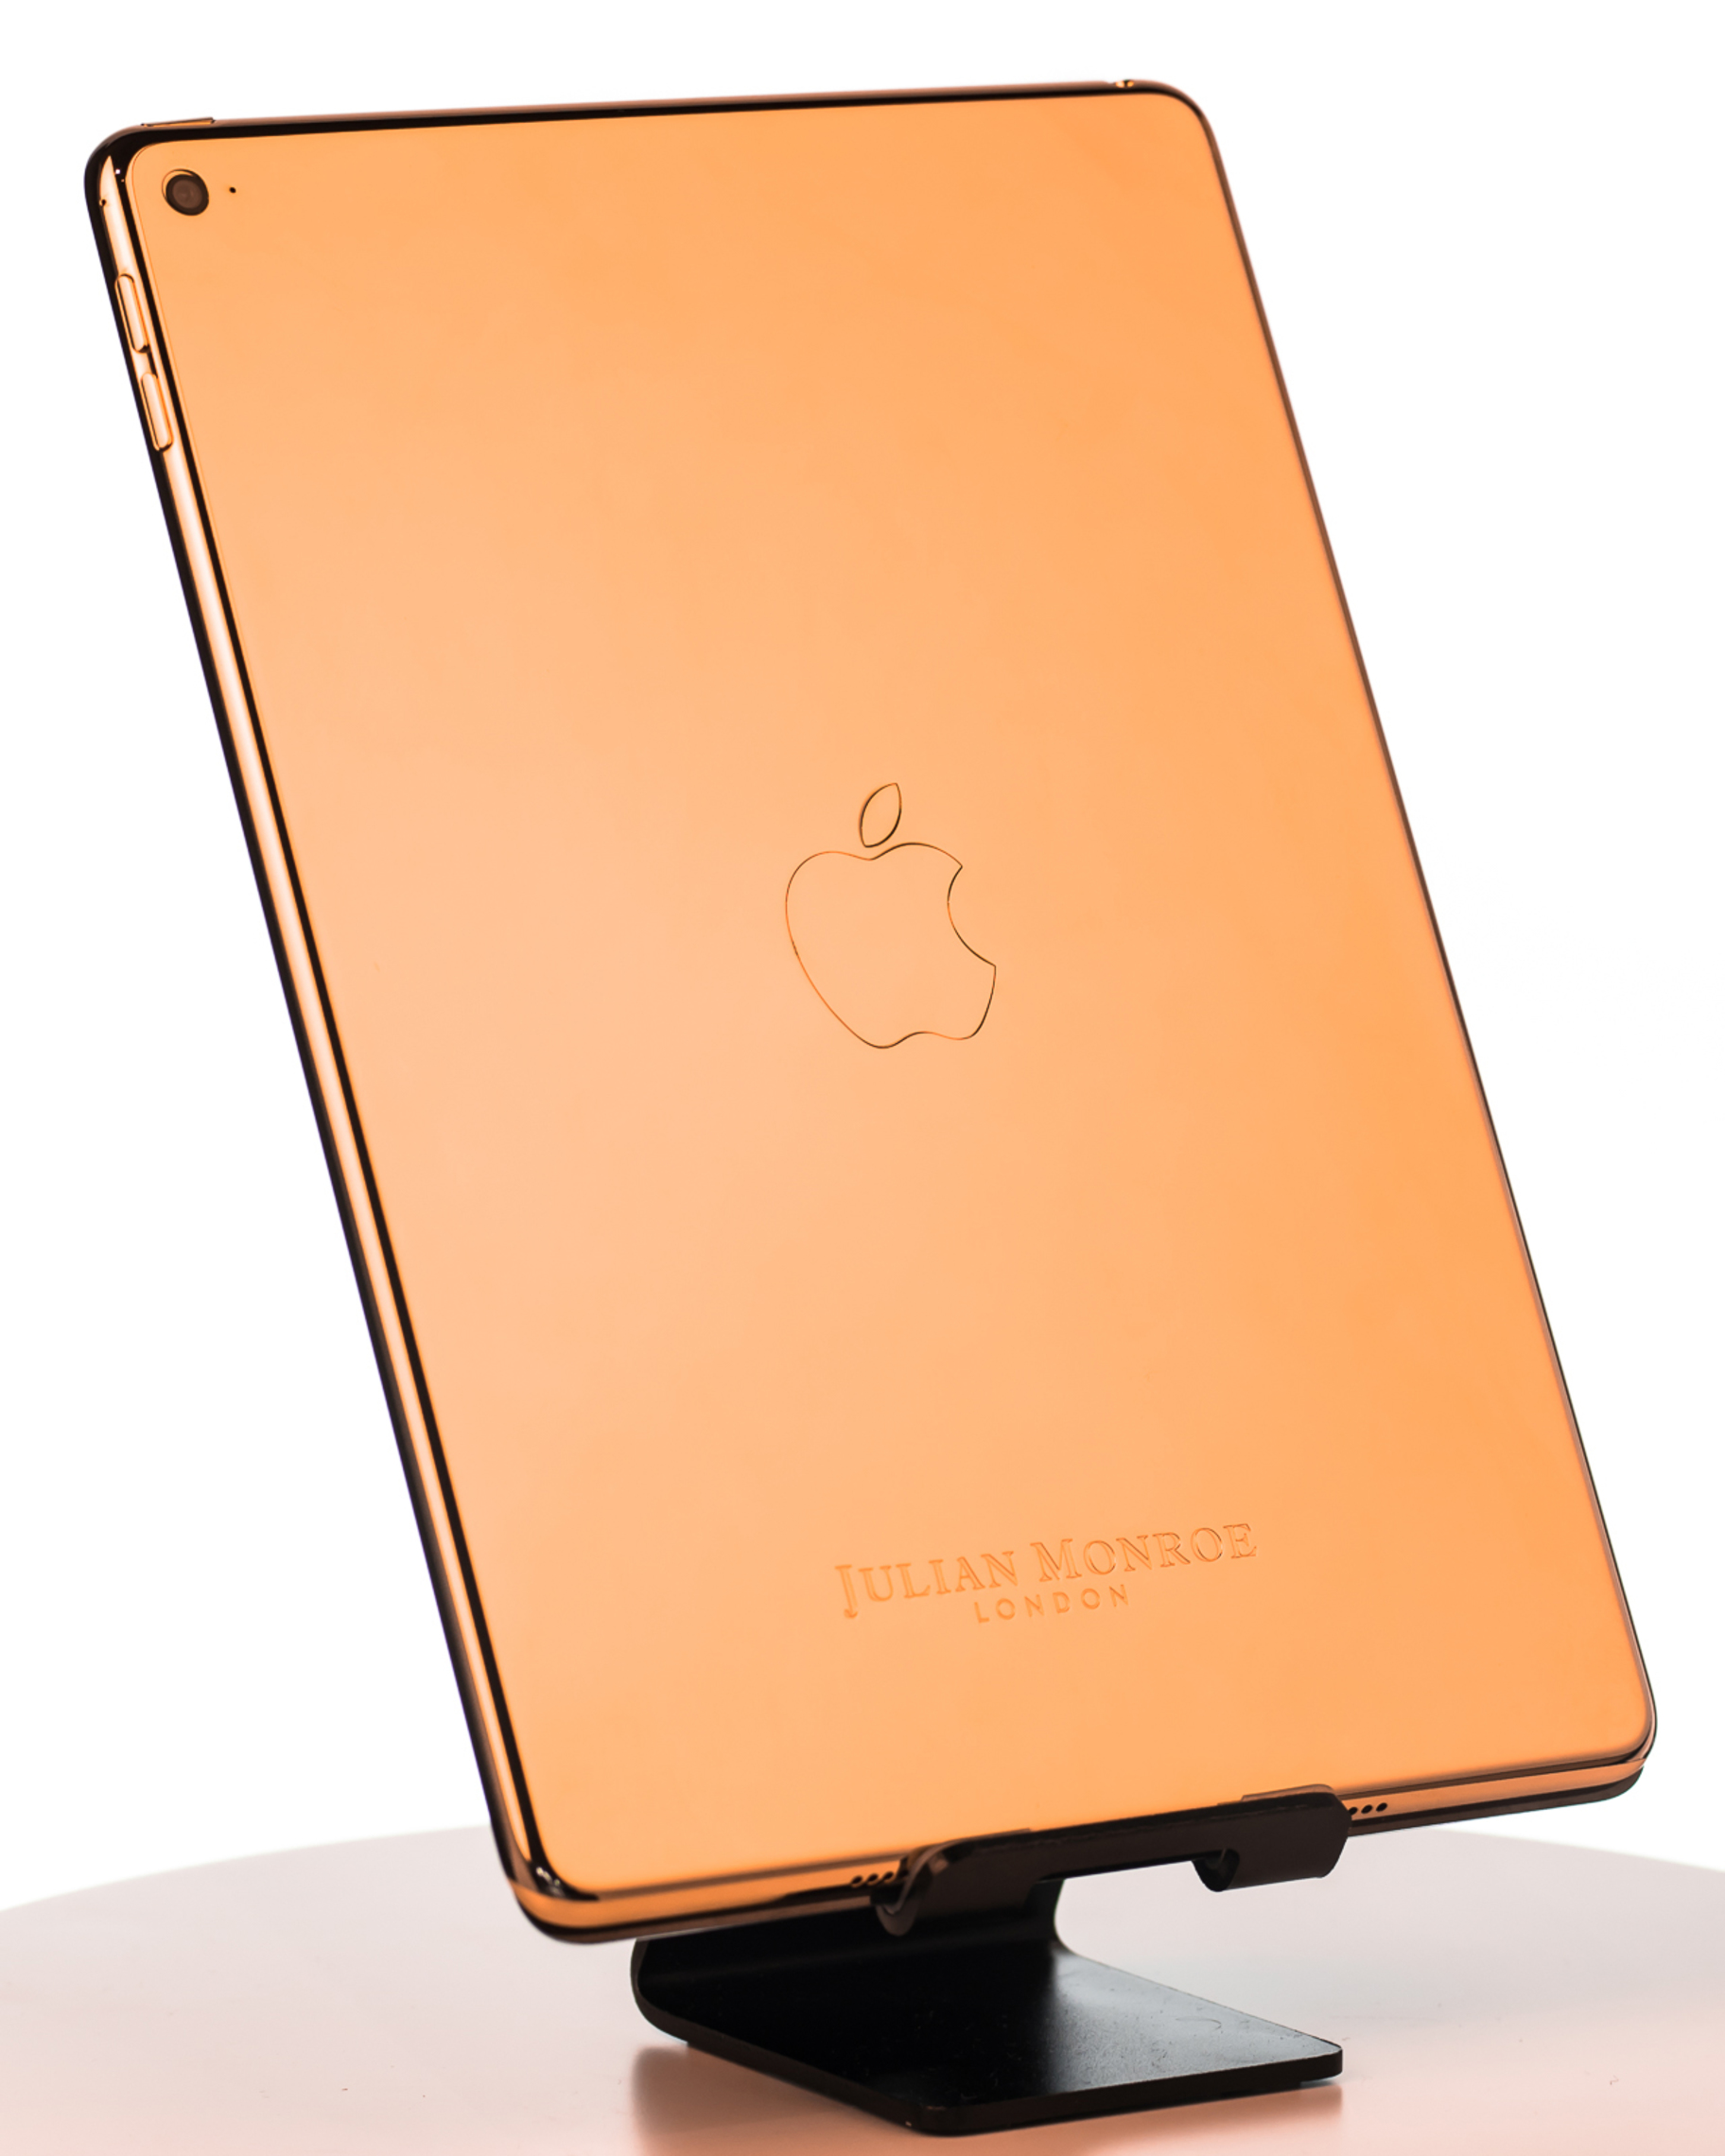 18ct Rose Gold iPad Air 2 (By Julian Monroe London)